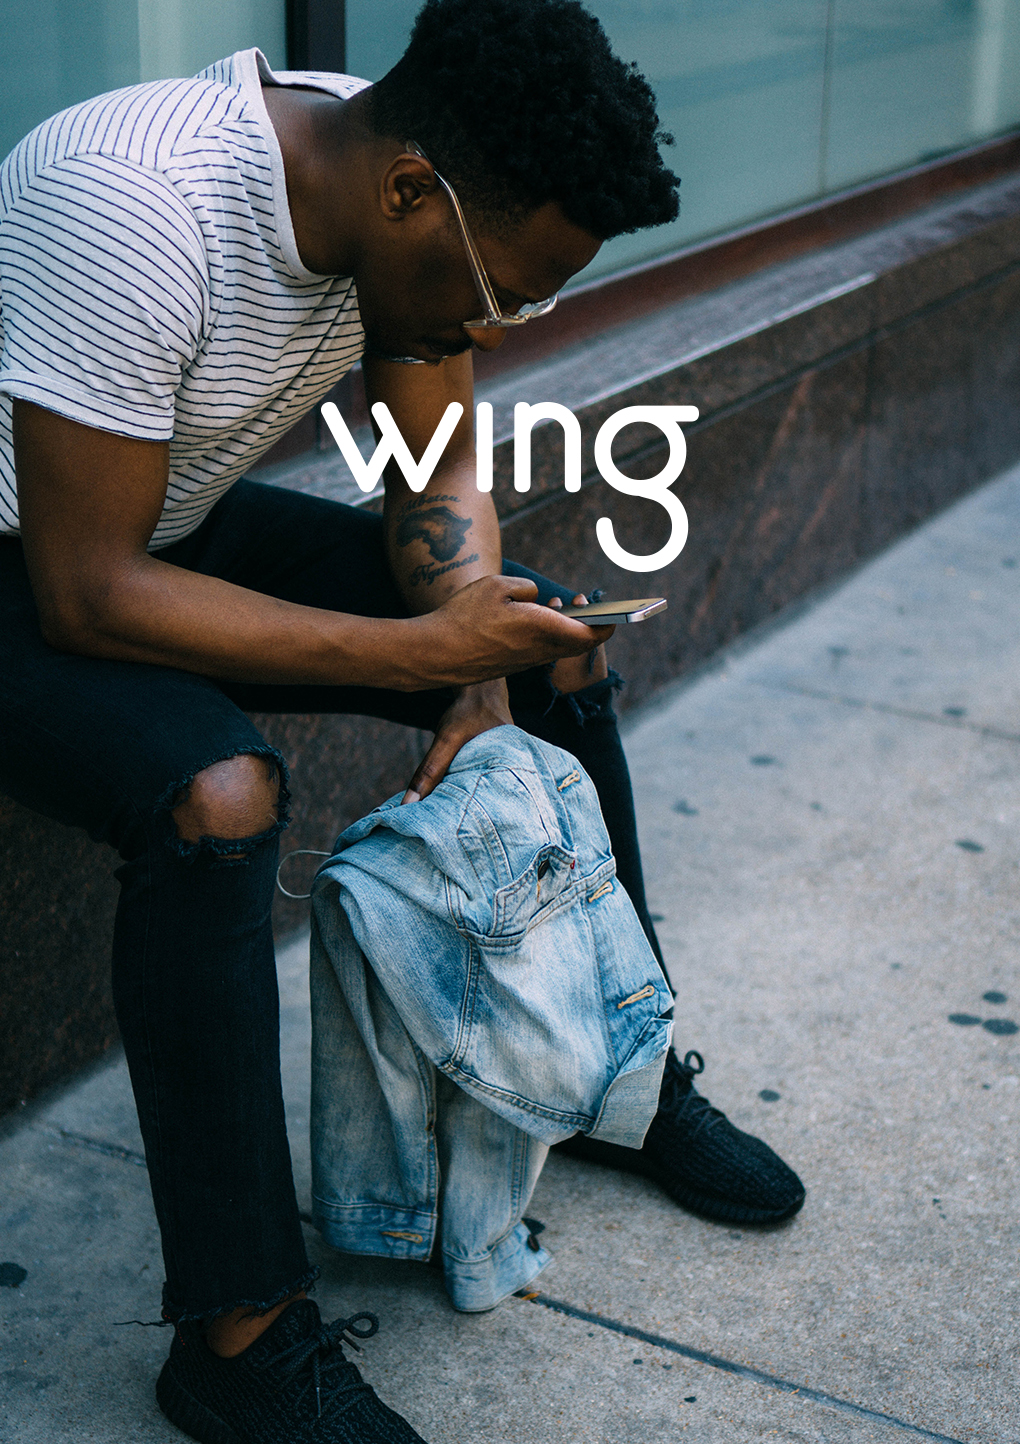 A mobile provider that puts people before profit - Wing delivers the same mobile coverage as the Big 4 carriers while never treating anyone like a number. It is a customer-first service in a world of legacy giants.Visit Wing ➝